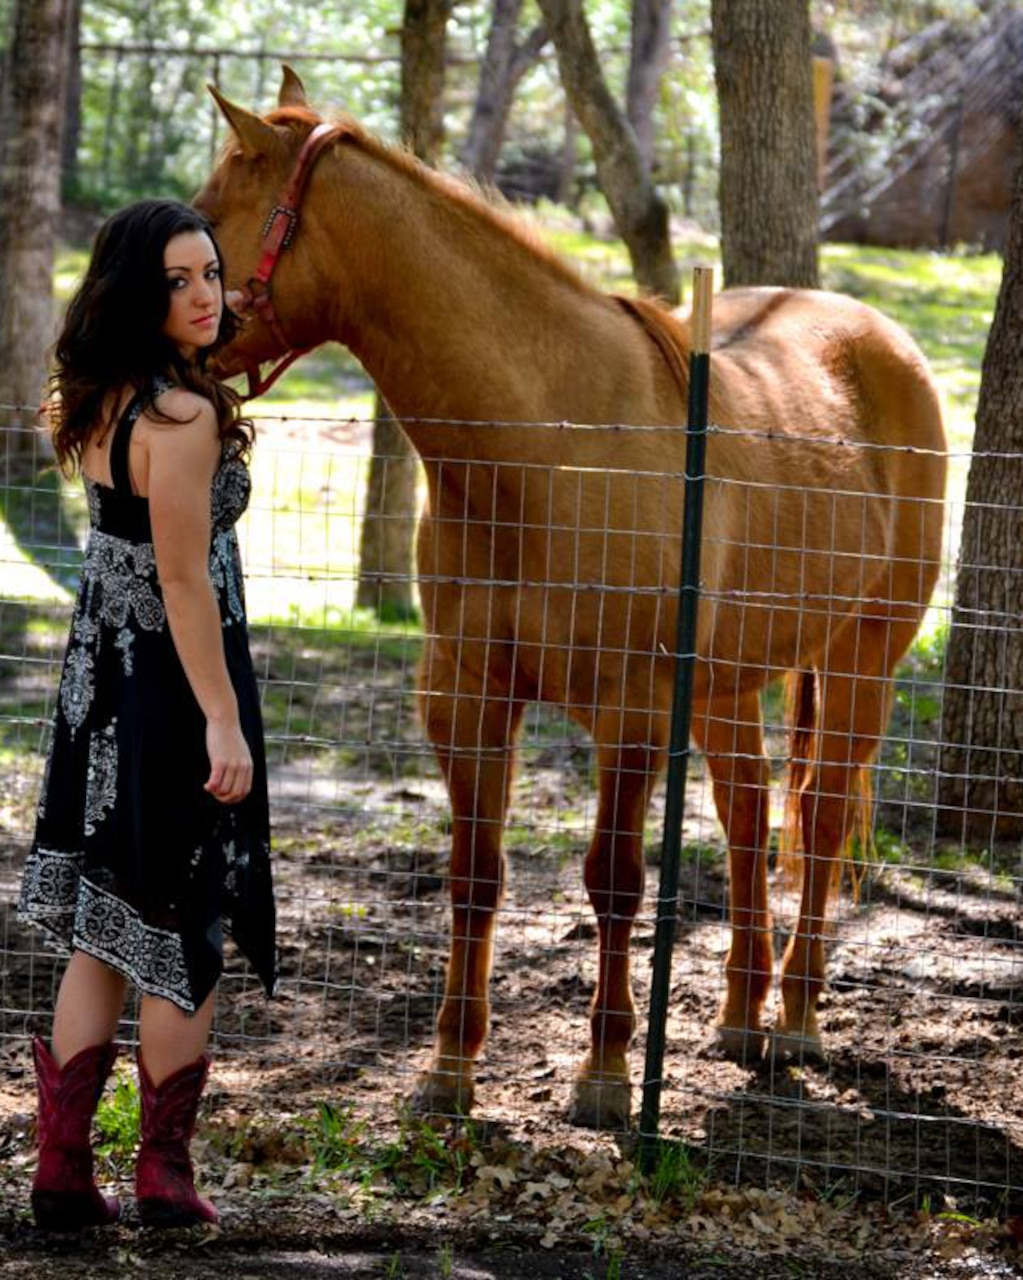 Woman poses with her horse.